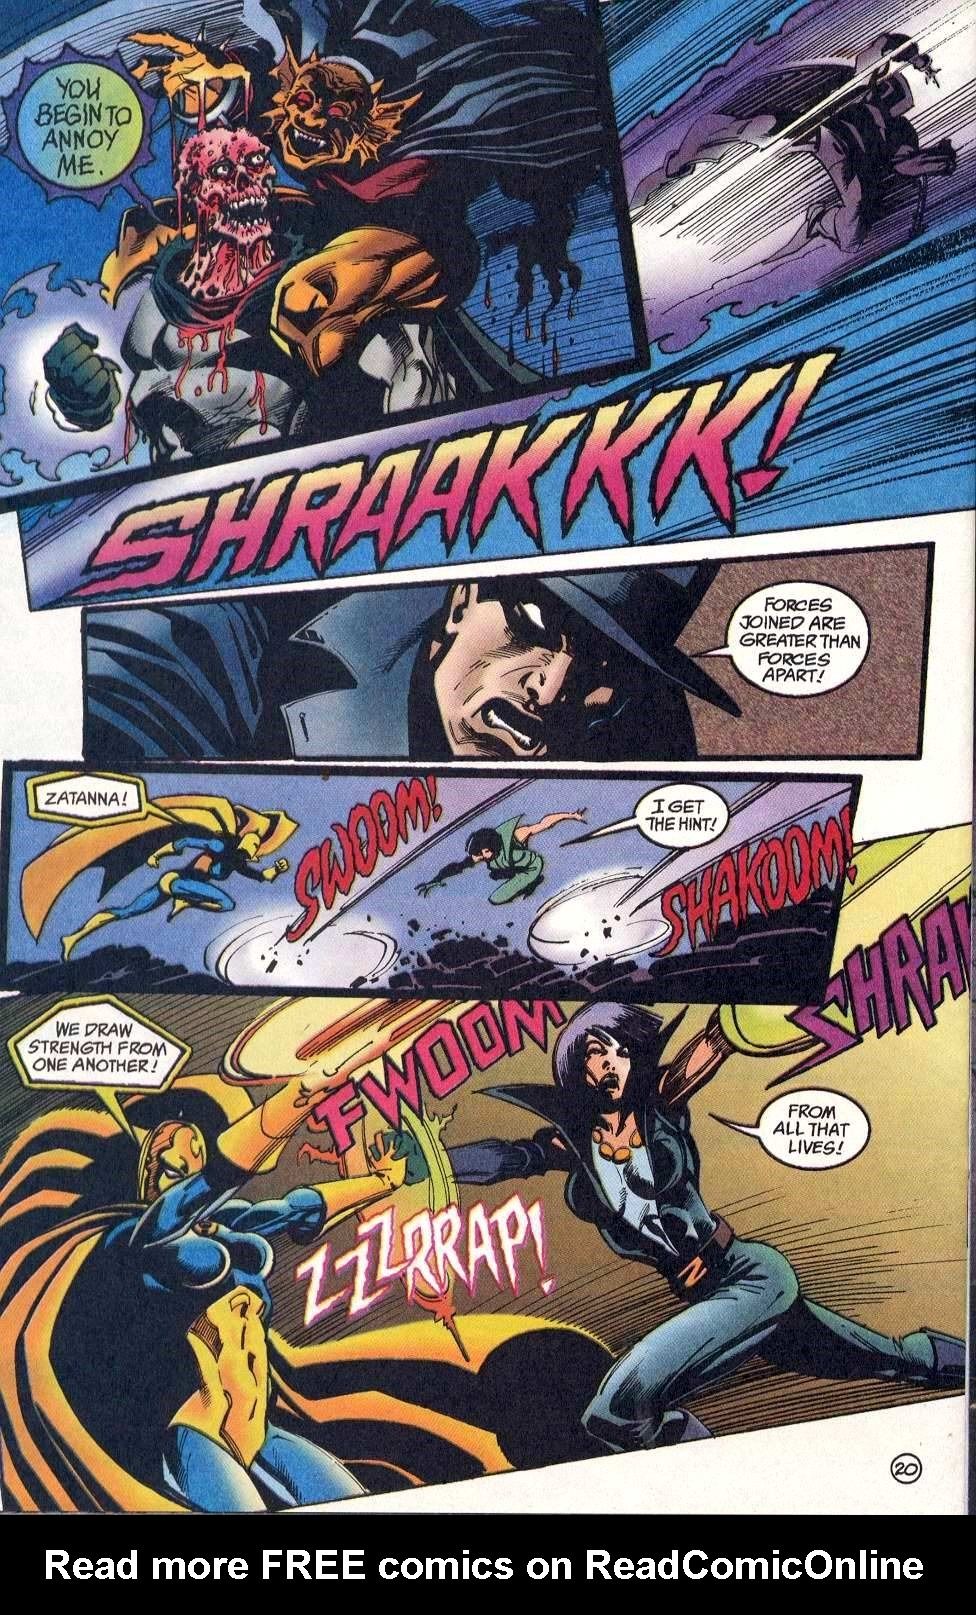 In the same fight After clawing Eclipso Spectre's face off he takes a blast that sends him into the air